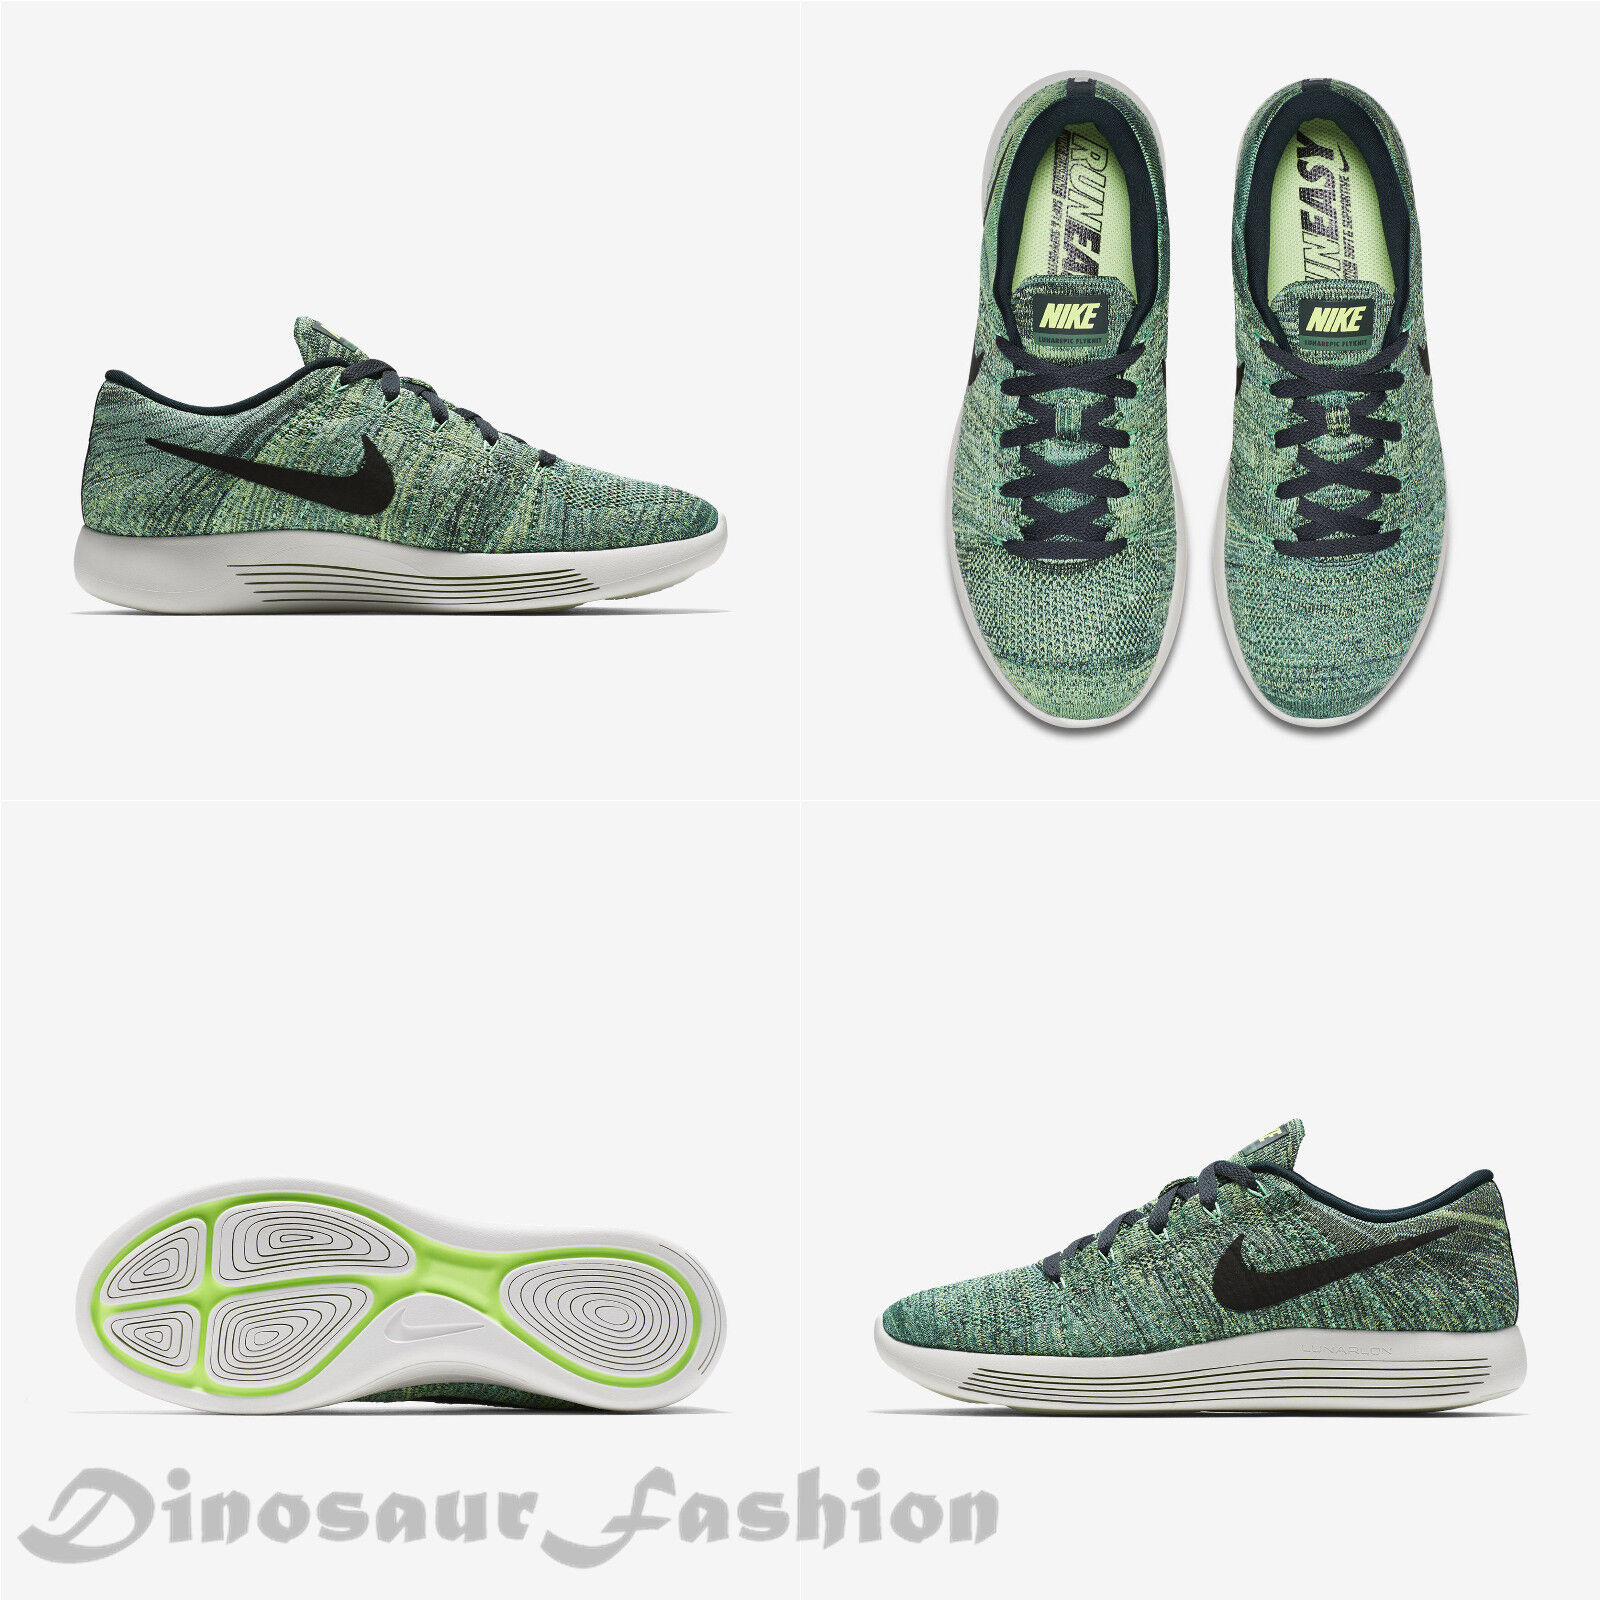 NIKE LUNAREPIC LOW FLYKNIT 843764-300,Men's RUNNING Shoes.NEW WITH BOX